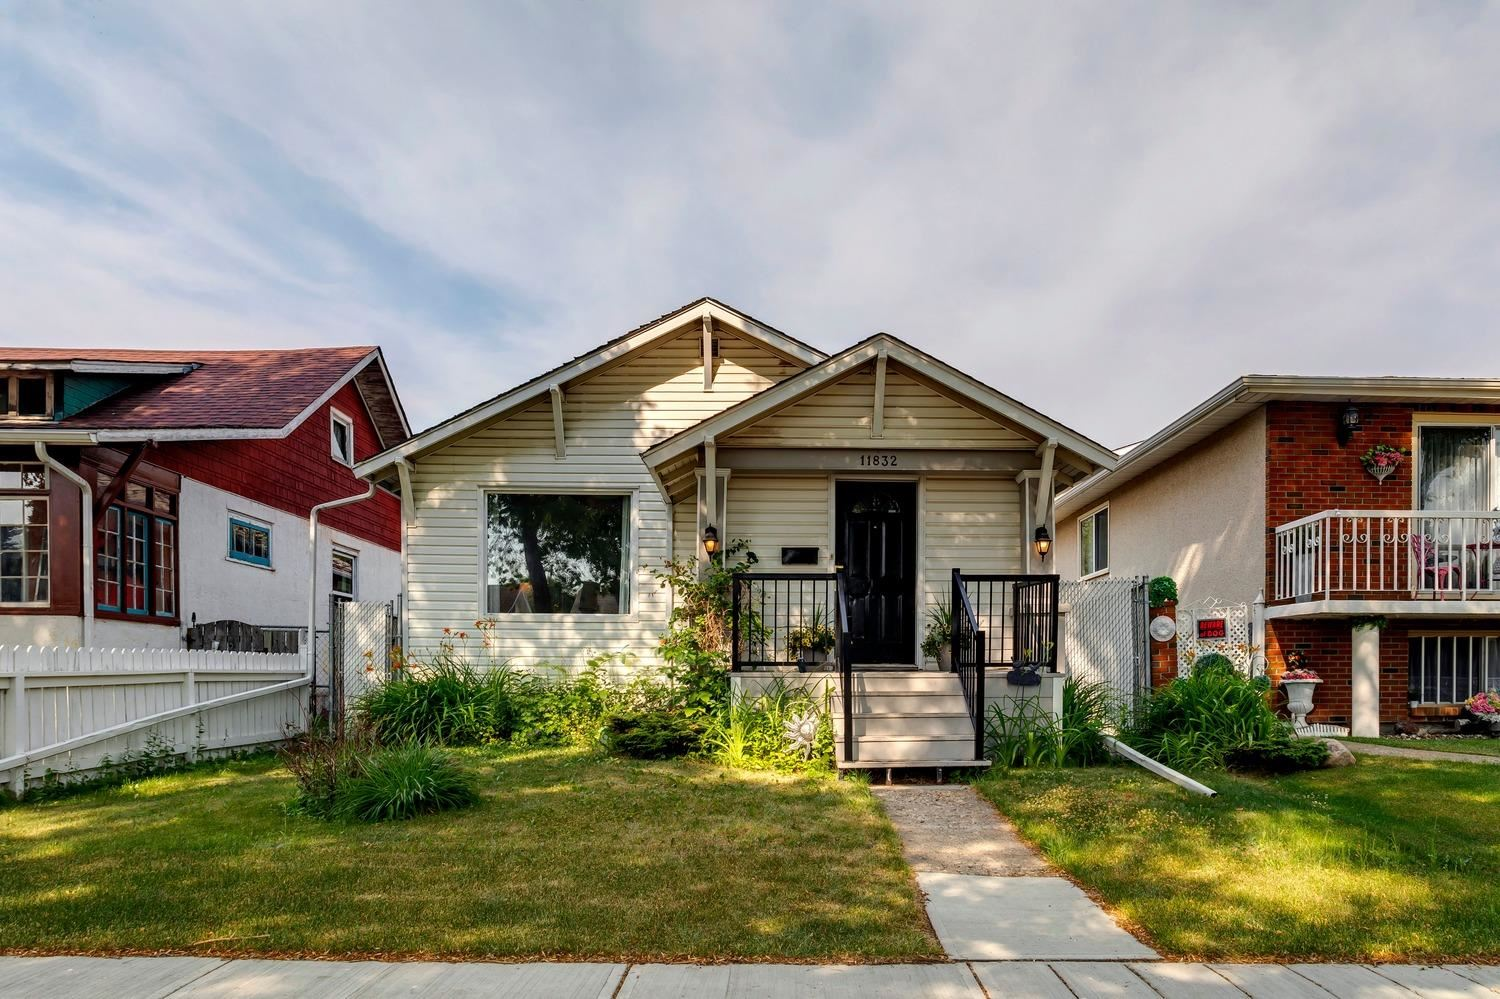 Great opportunity in central Edmonton. Upgraded character home w/2nd kitchen located on a quiet street, close to all amenities. The main floor offers 3 spacious bedrooms, remodeled kitchen, upgraded 4pc bath, and open living/dining areas. The newly developed lower level features a beautiful kitchen, huge bedroom, large living area, 4-pc bath, separate entrance, and vinyl flooring throughout. Outside you will enjoy the fully fenced/landscaped yard w/swing gates in the rear, perfect for RV/additional parking. Other recent upgrades include: electrical, plumbing lines, furnace, HWT, windows, both kitchens, bathrooms, appliances, backflow valve, spray foam drywall in basement, front decking, paint, fixtures, and more. Close to LRT, transit, schools, shopping, and other amenities. Perfect for a young family, investor, or first time buyer!